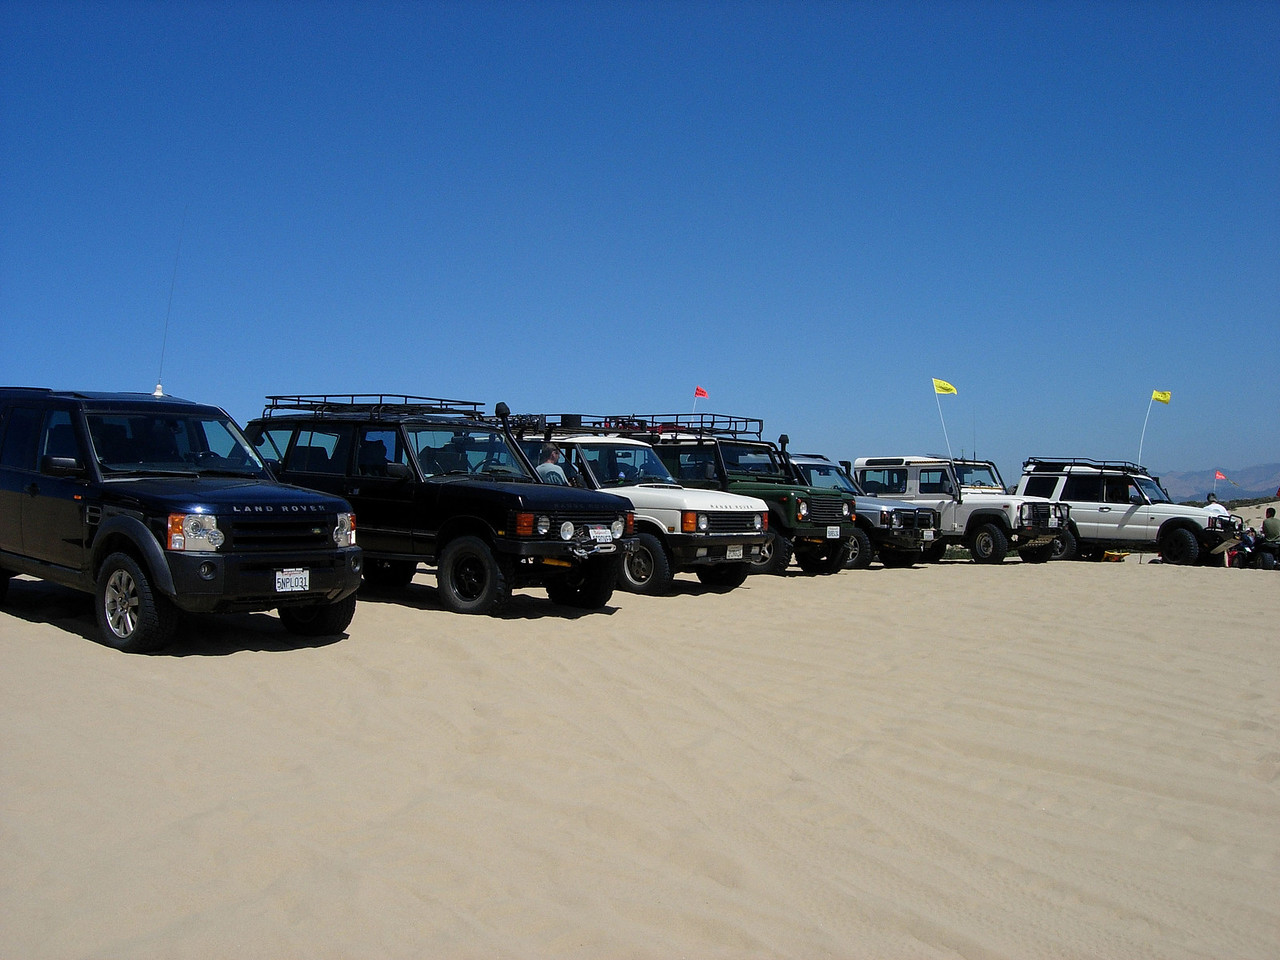 Pismo Beach; Land Rover; Off Roading; camping;